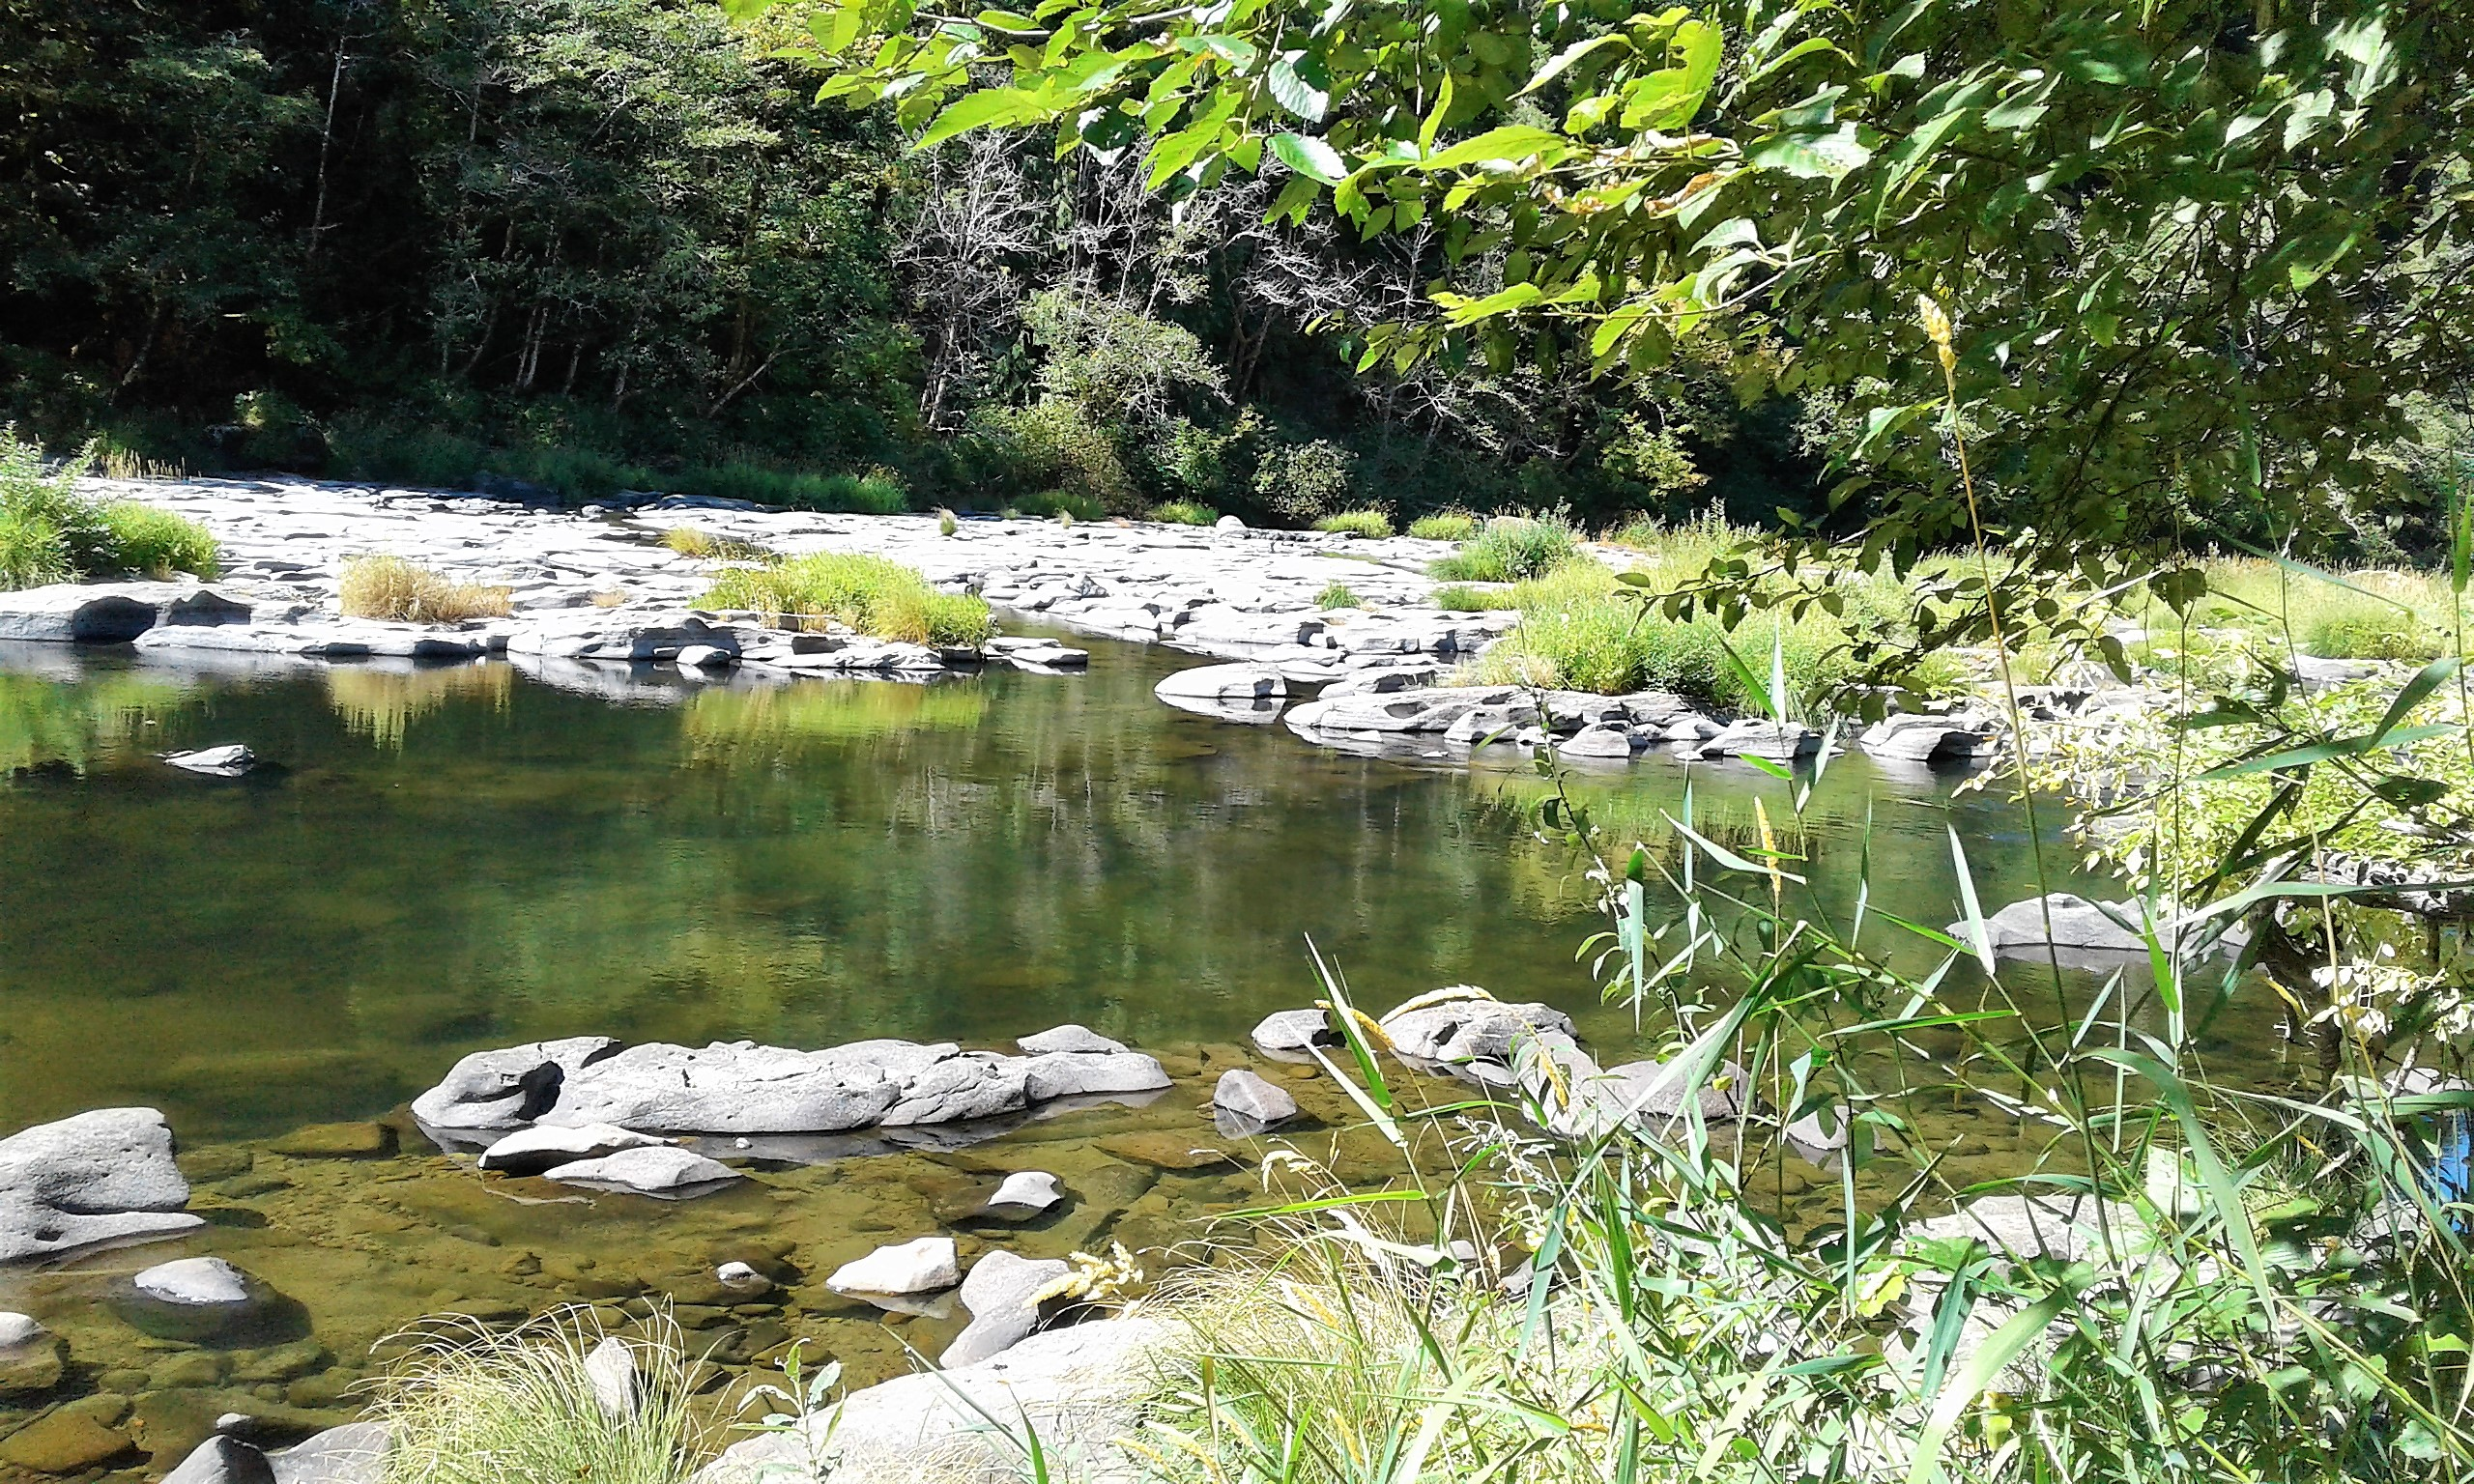 20180903_123723Flat Rock on a fork of the Siuslaw River